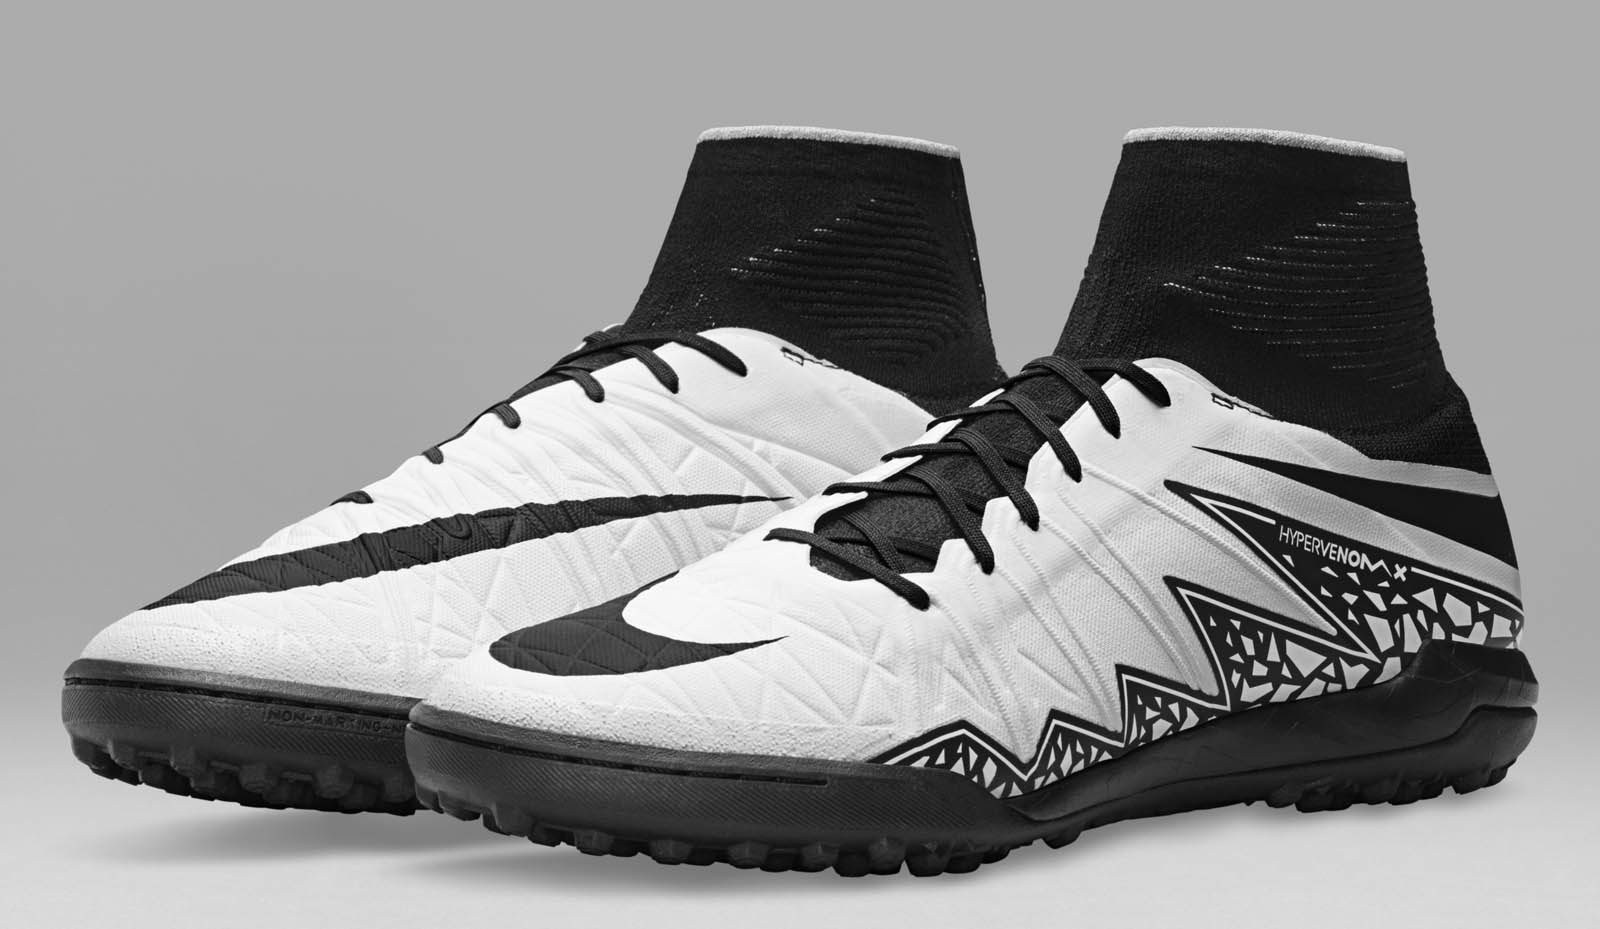 los angeles fce26 1d0f3 White Black Nike HypervenomX Proximo Radiant Reveal 2016 Boots Released -  Footy Headlines .